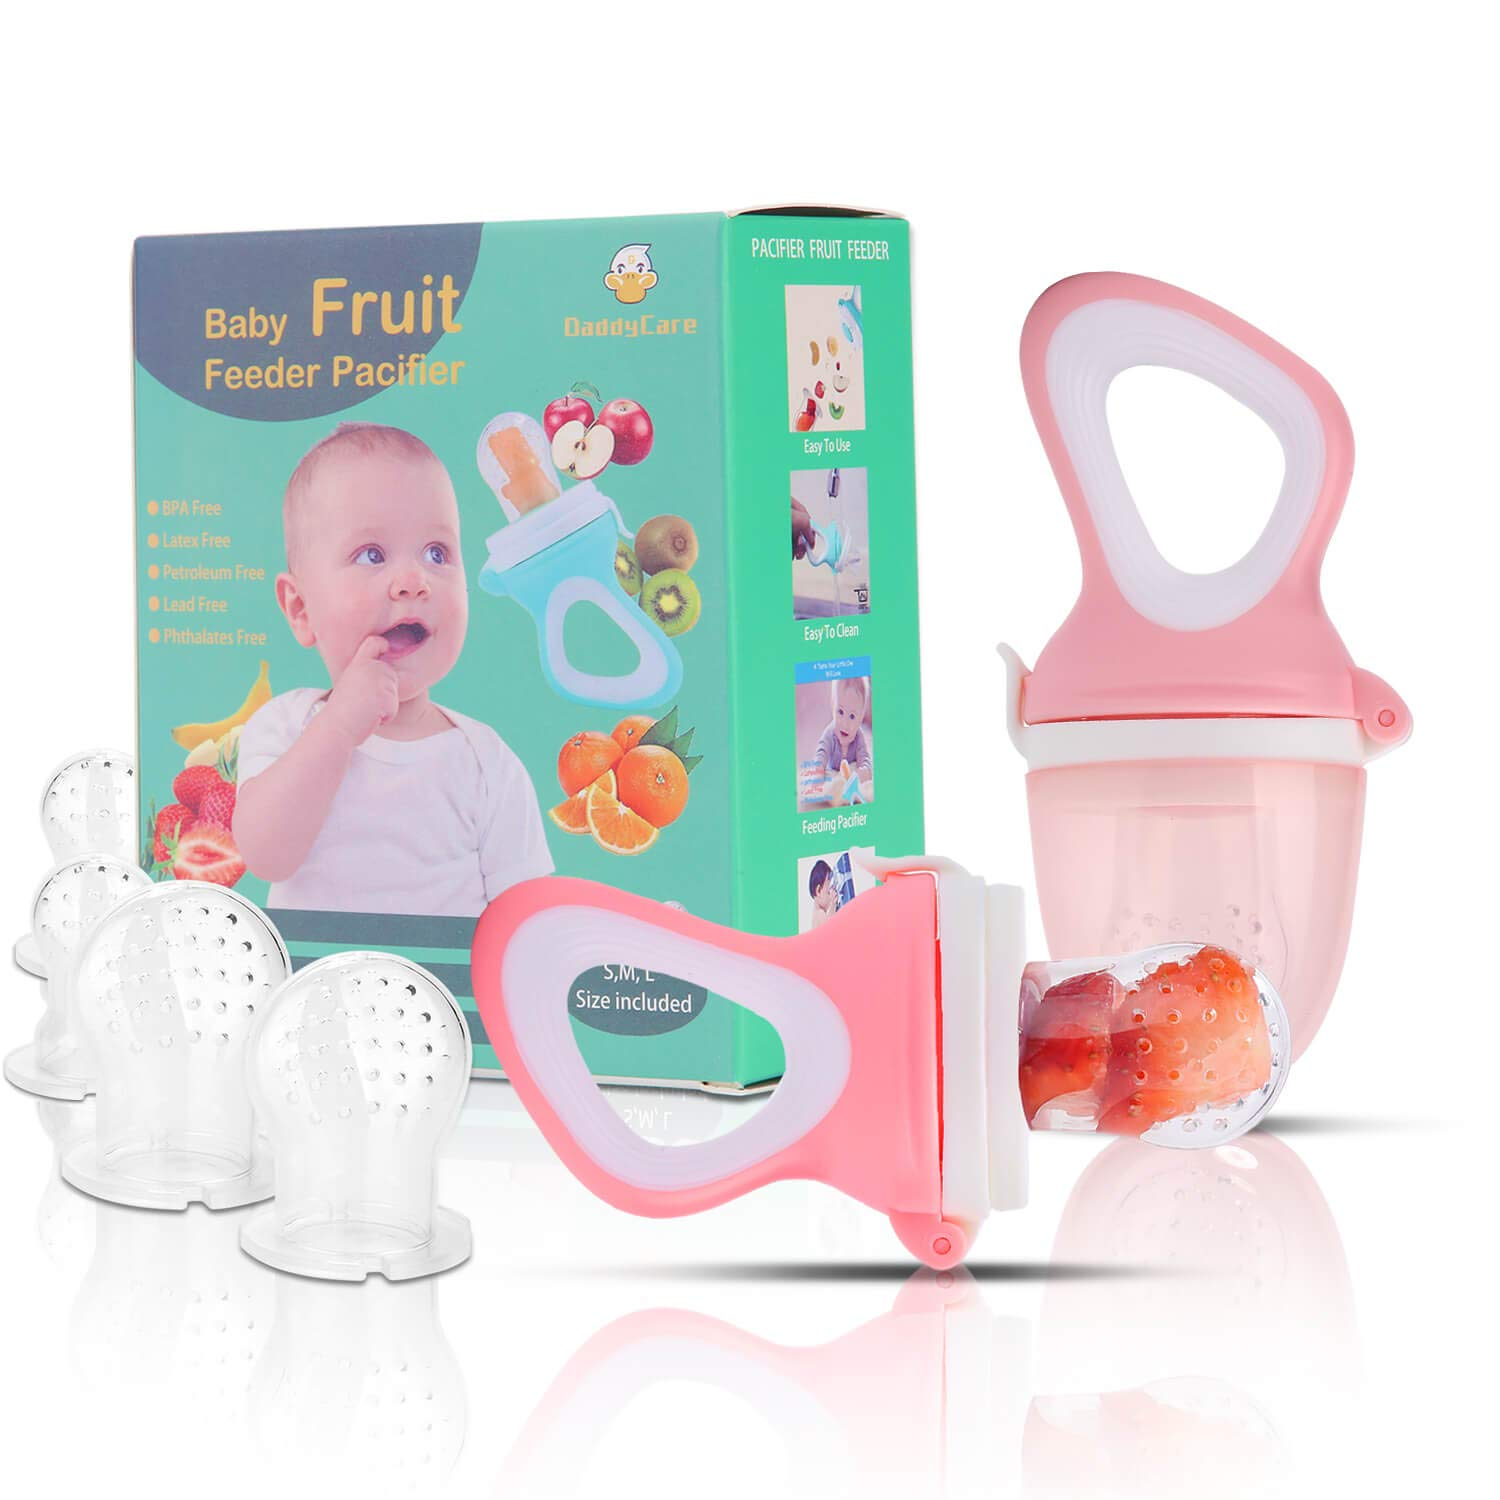 Baby Fruit Feeder Pacifier(2 Pack) - Baby Food Feeder - Infant Fruit Teething Toy for Toddlers Pacifier, Feeder, Teether with 6 PCS Silicone Pouches (Light Pink)